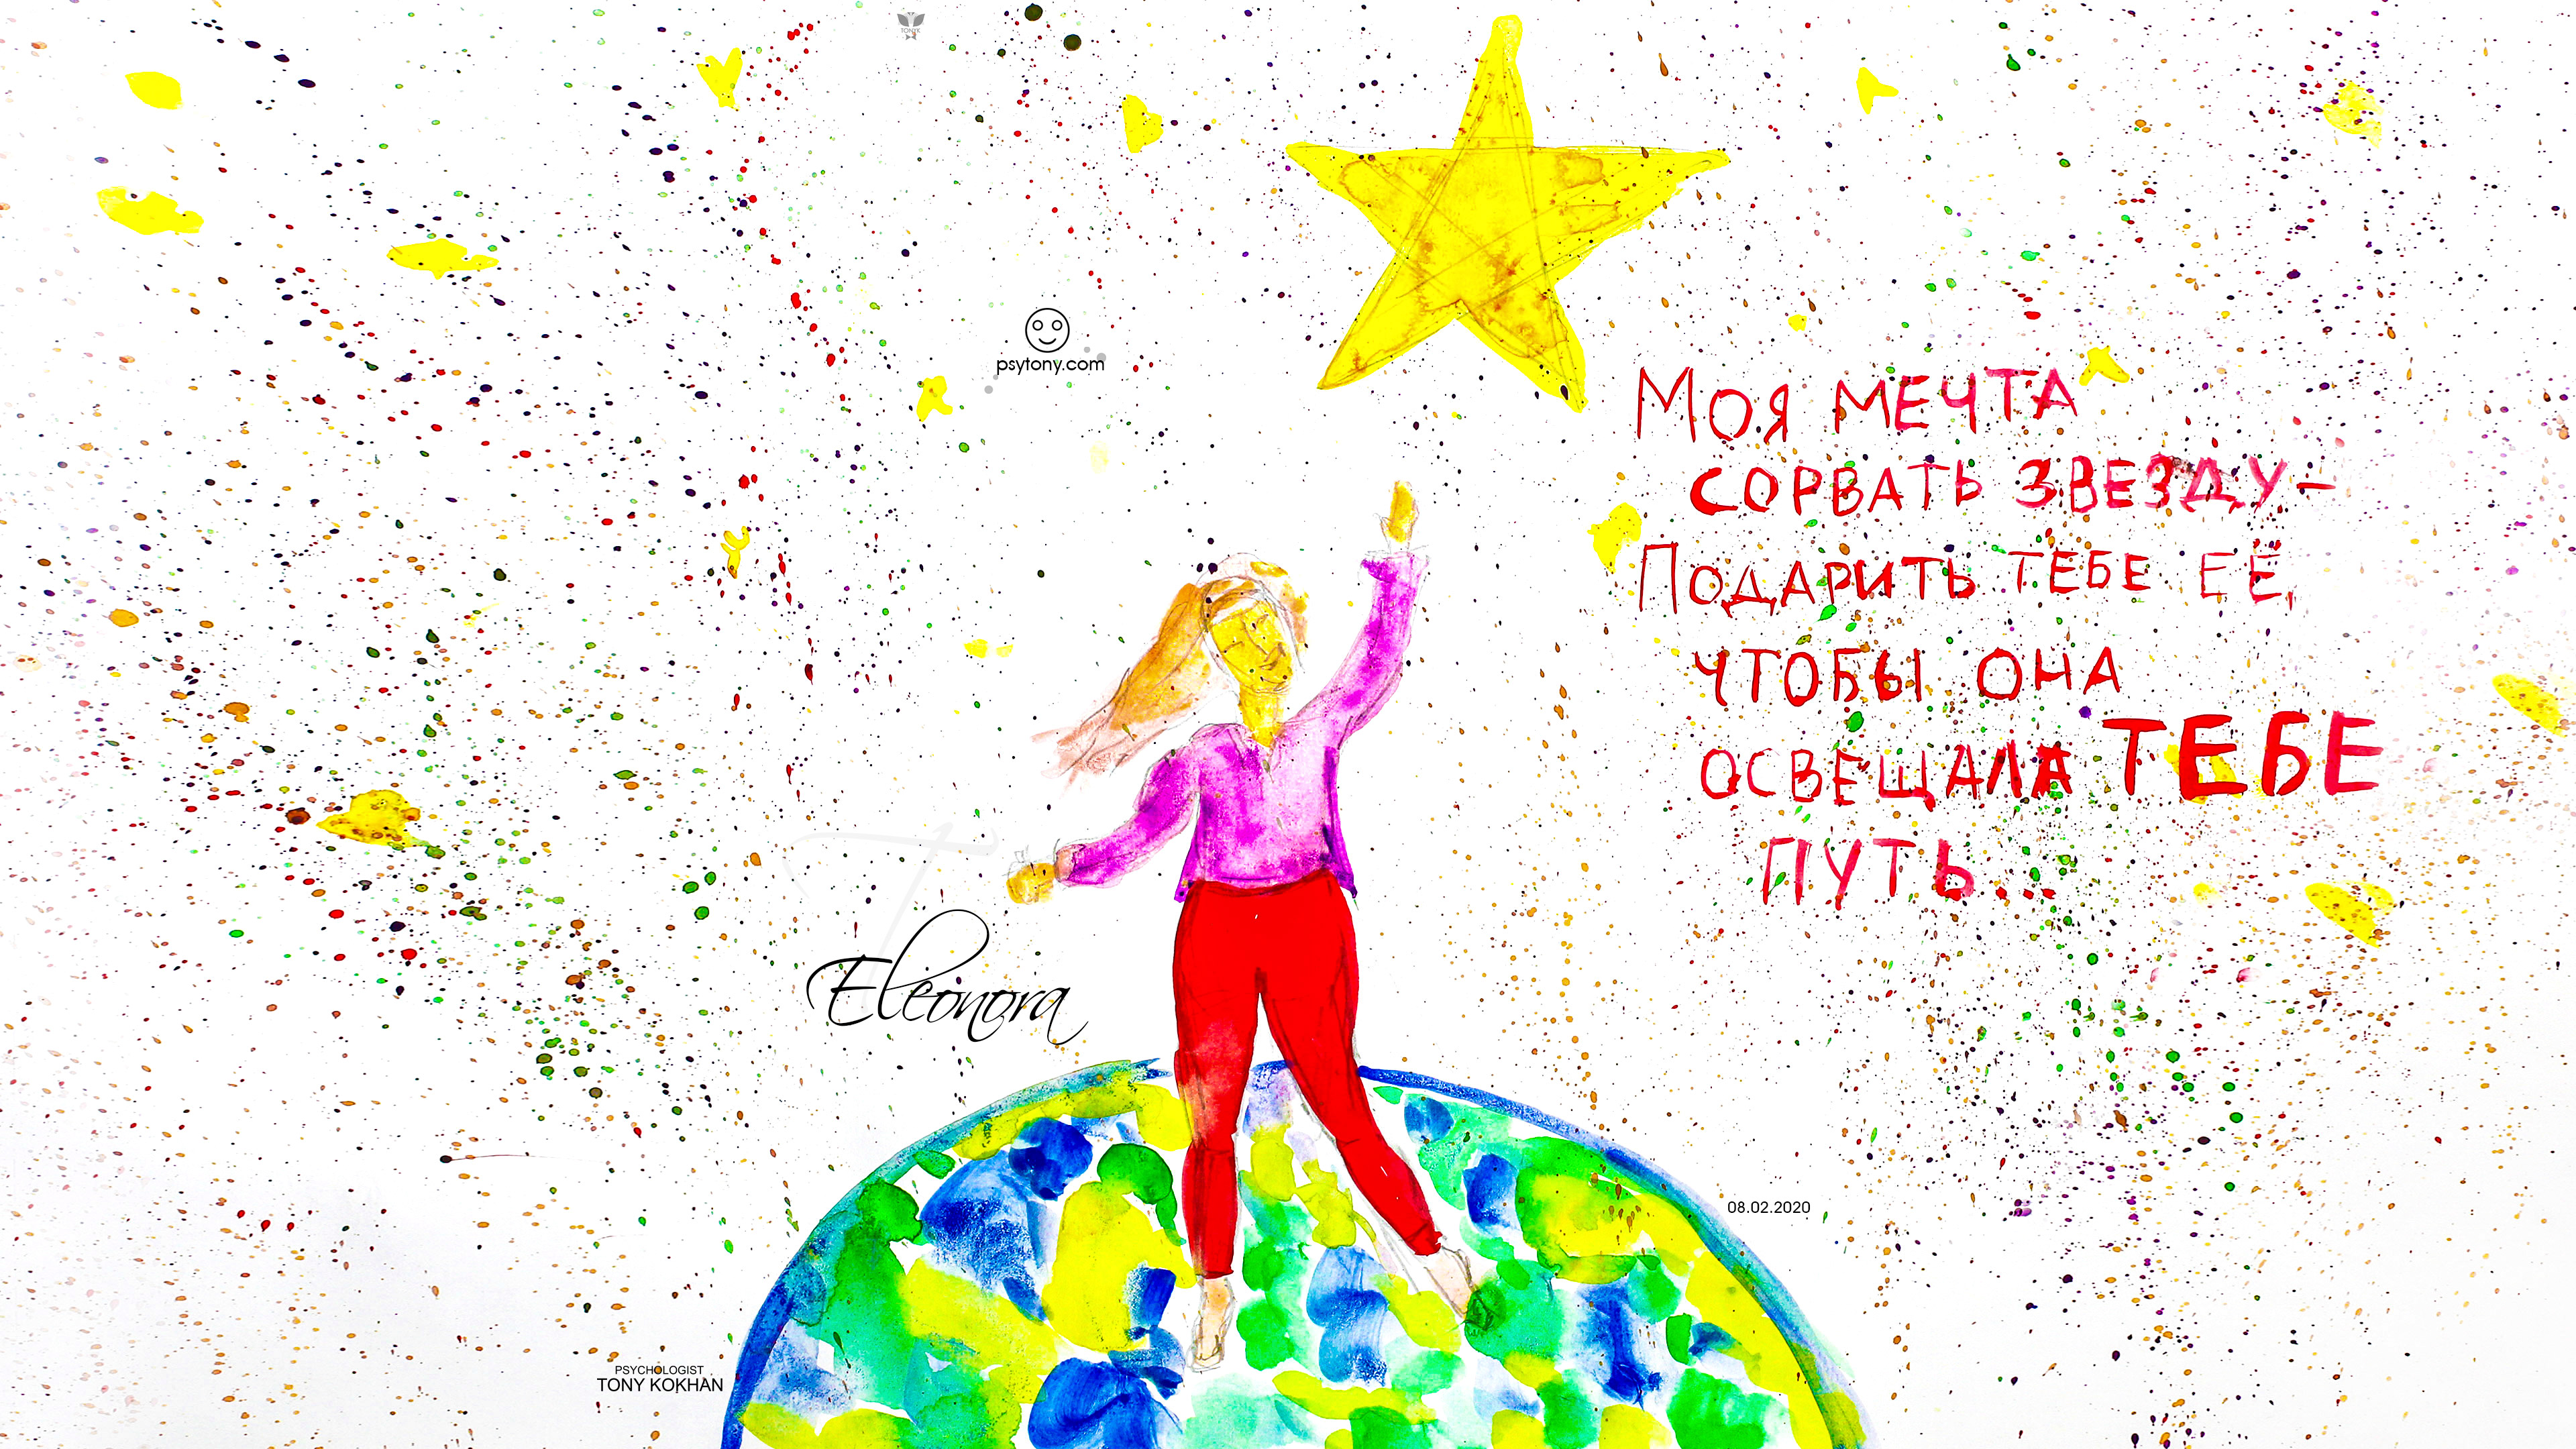 Eleonora-Soul-Girl-Red-Pants-Super-Get-Star-Dream-Planet-Earth-Space-Many-Stars-Gouache-Art-2020-Multicolors-4K-Wallpapers-by-Psychologist-Tony-Kokhan-www.psytony.com-image